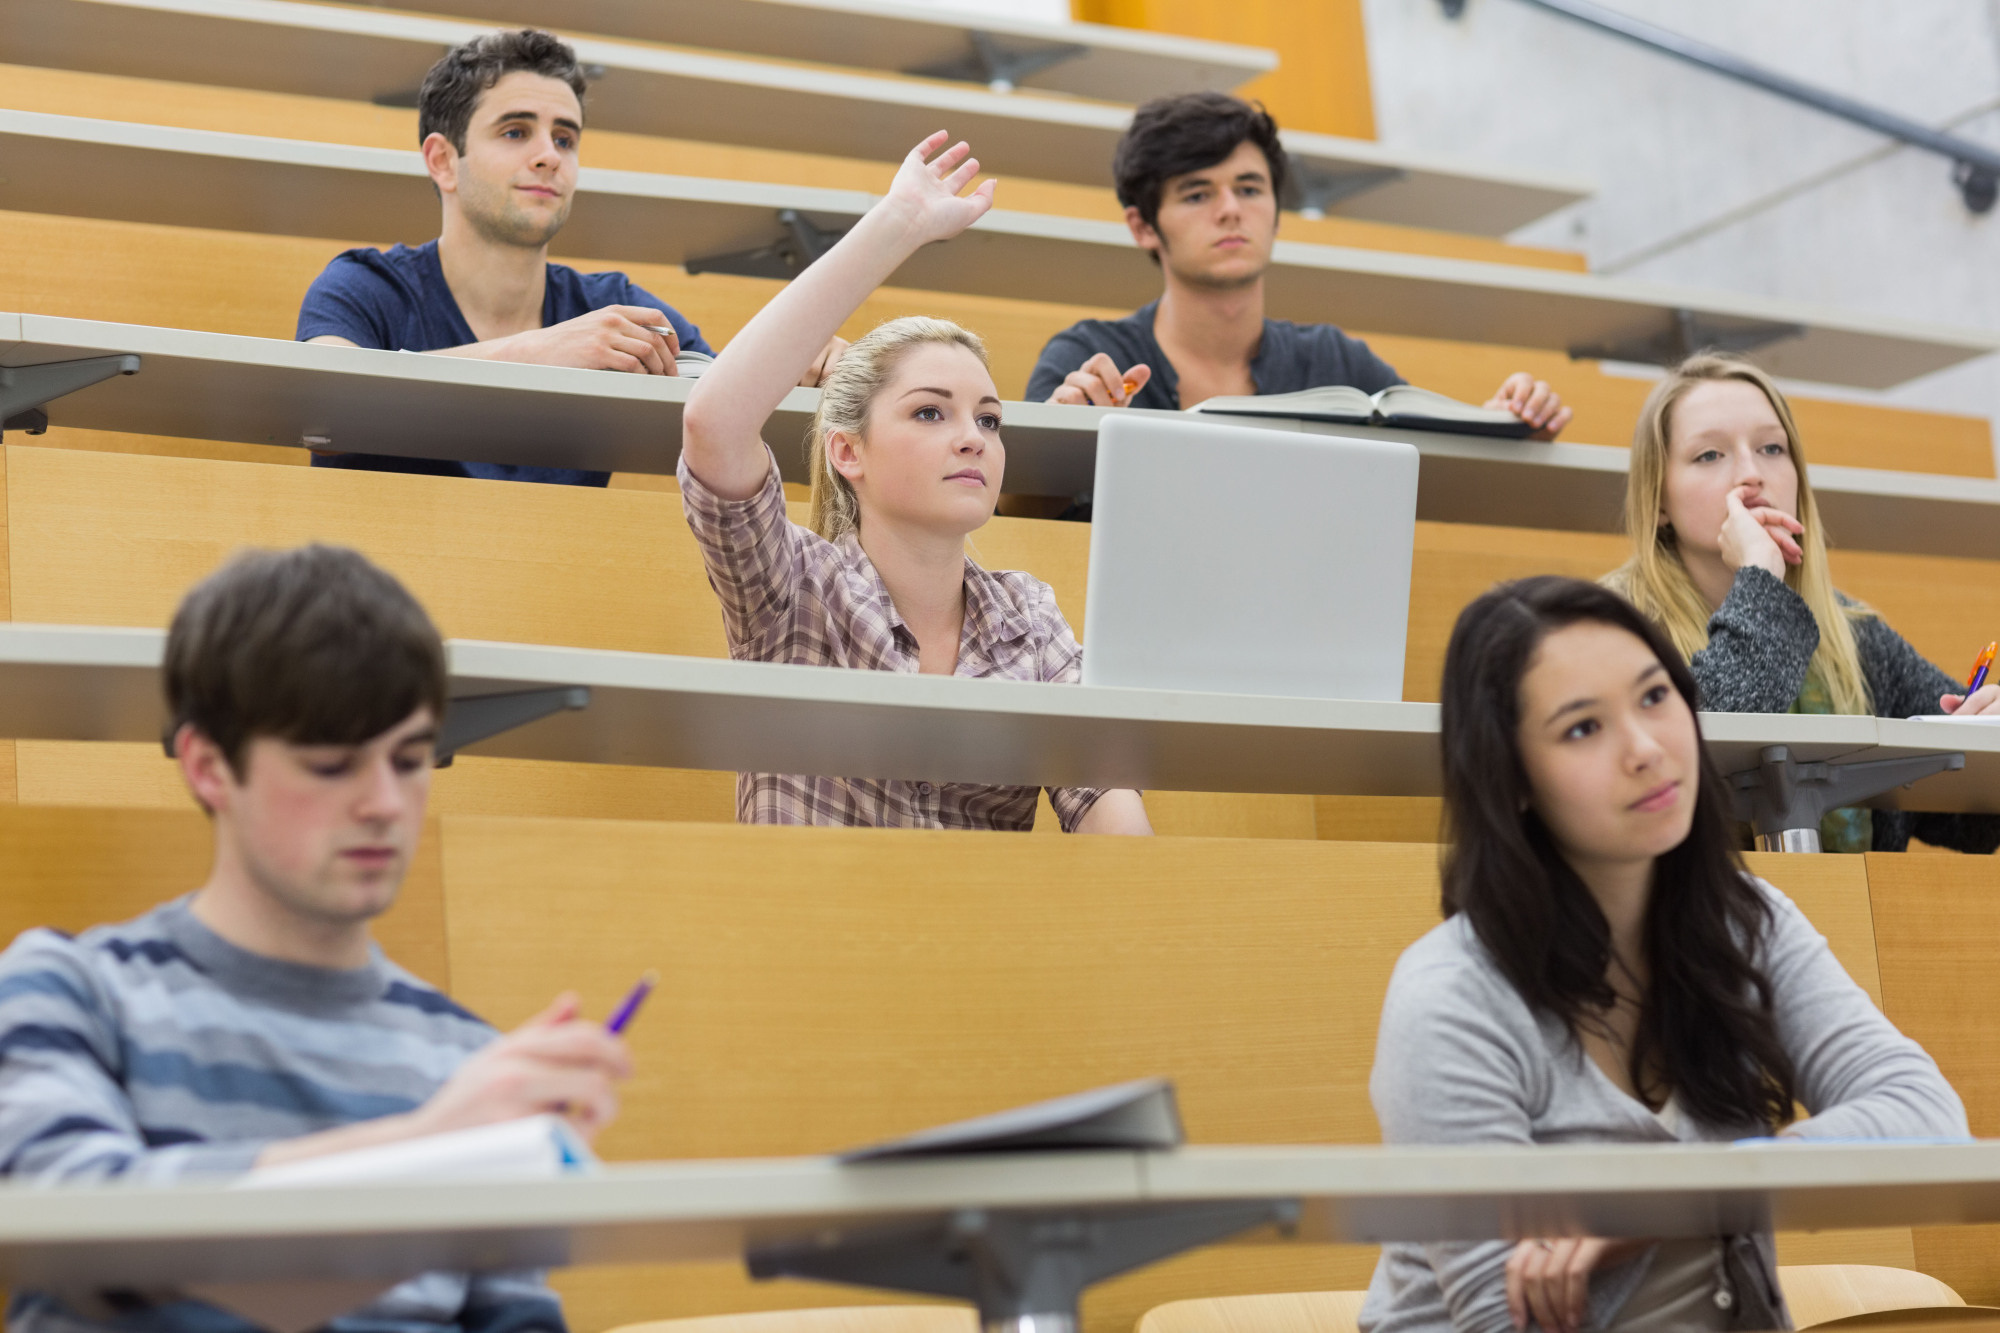 Japanese universities are increasing the number of English-only degree programs in order to attract foreign students. The Japanese government has set the goal of achieving 300,000 foreign students by 2020. | GETTY IMAGES